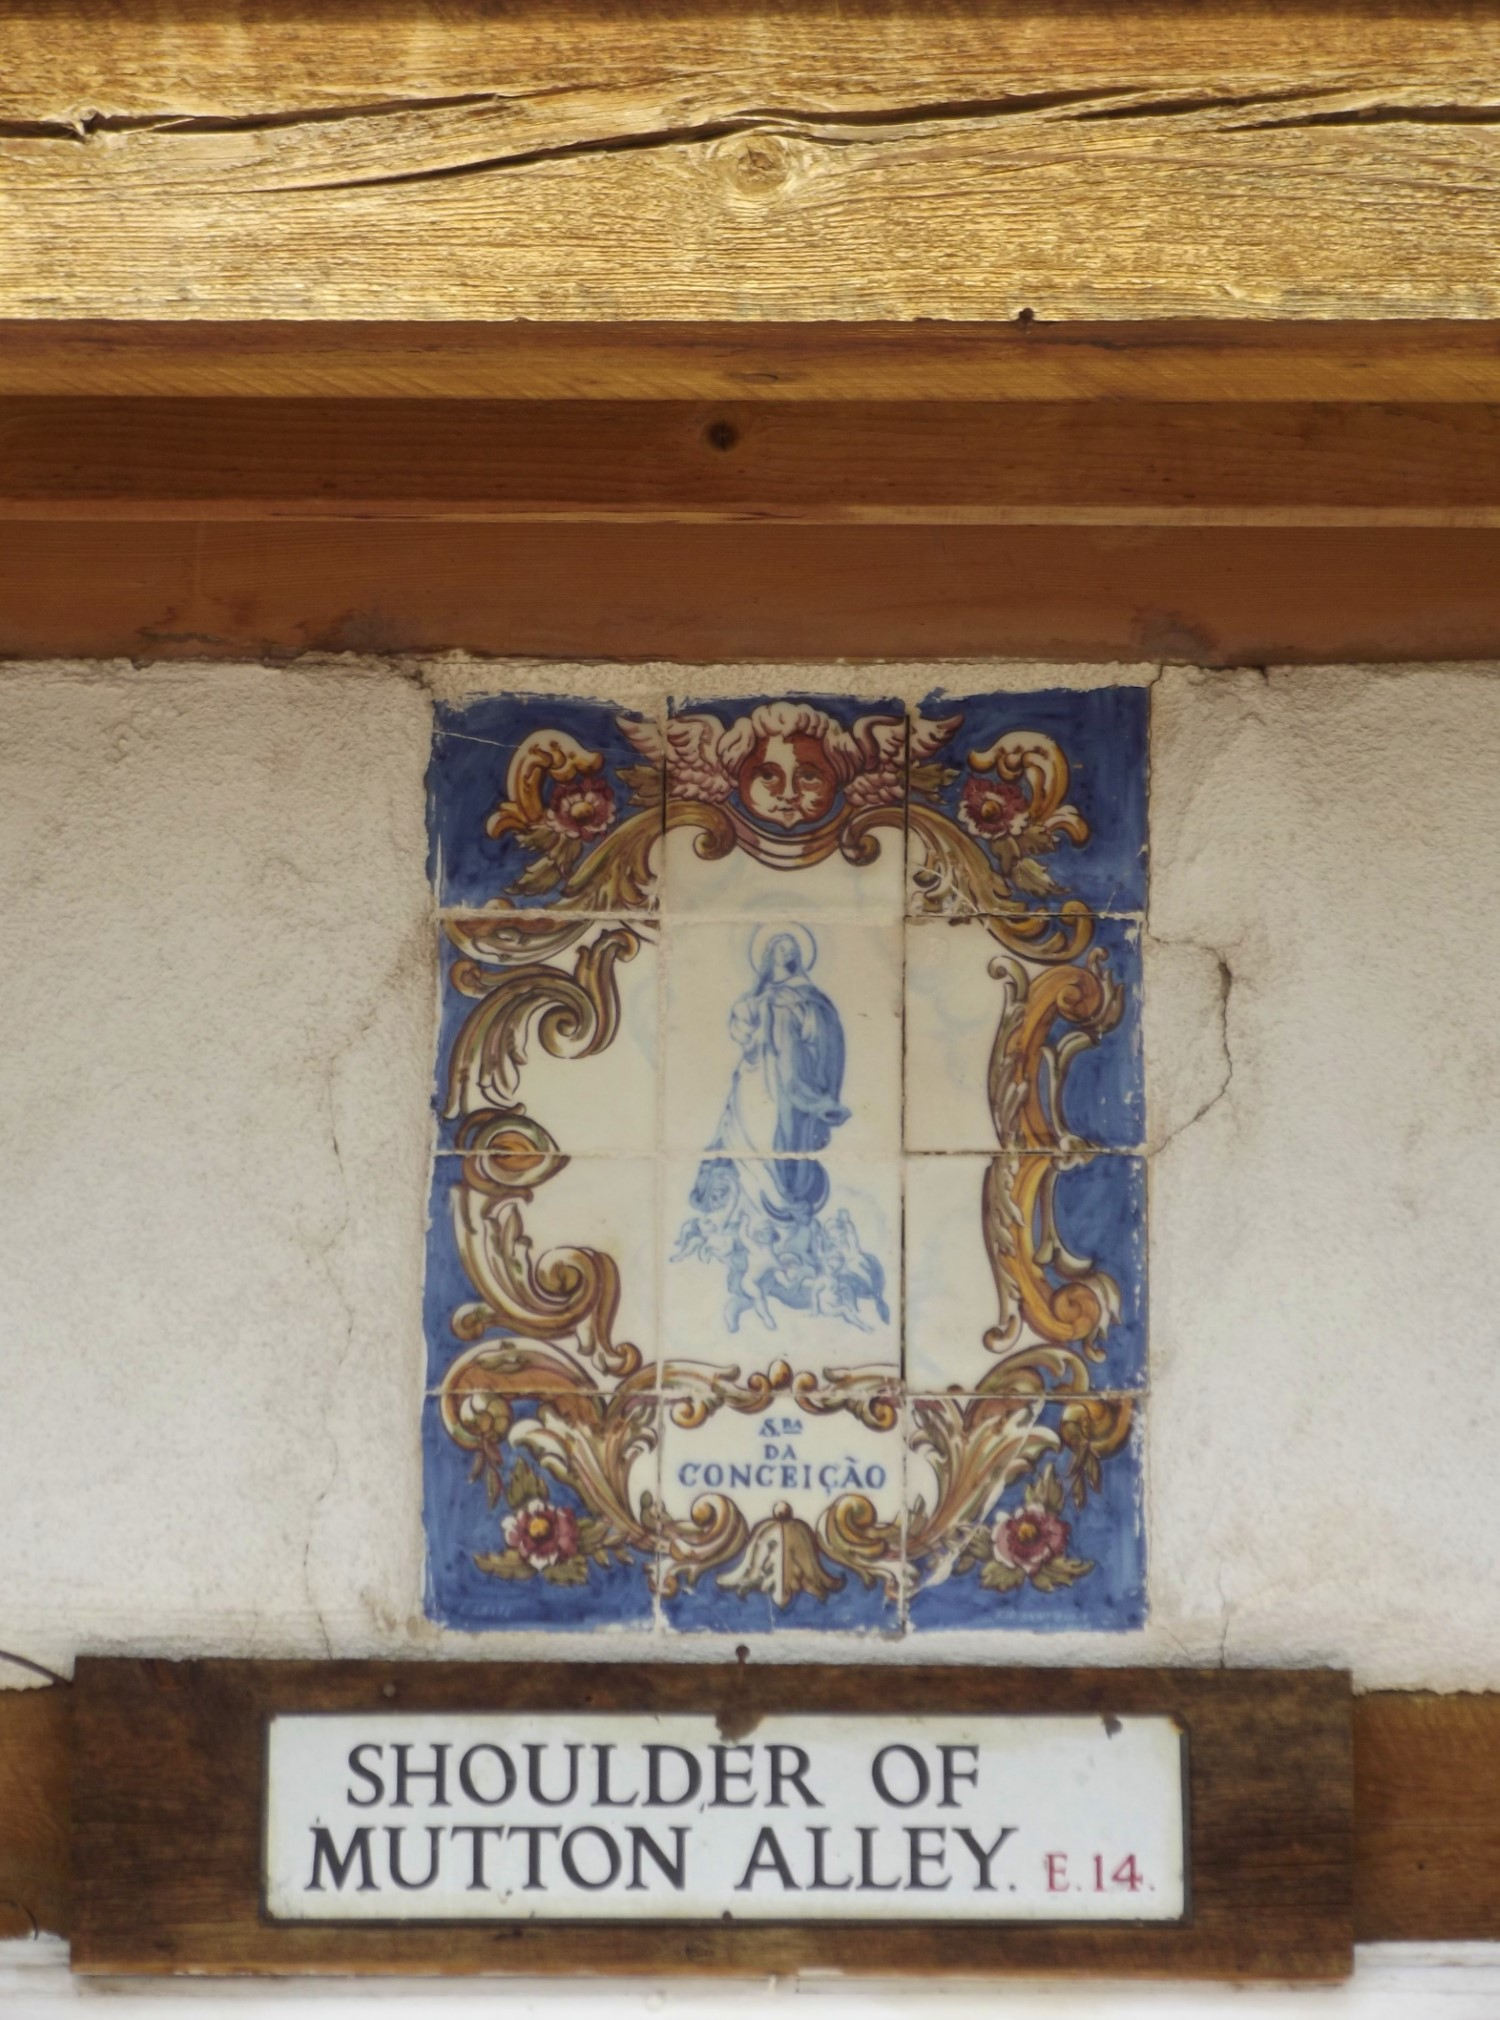 Portuguese tiles and old London street sign